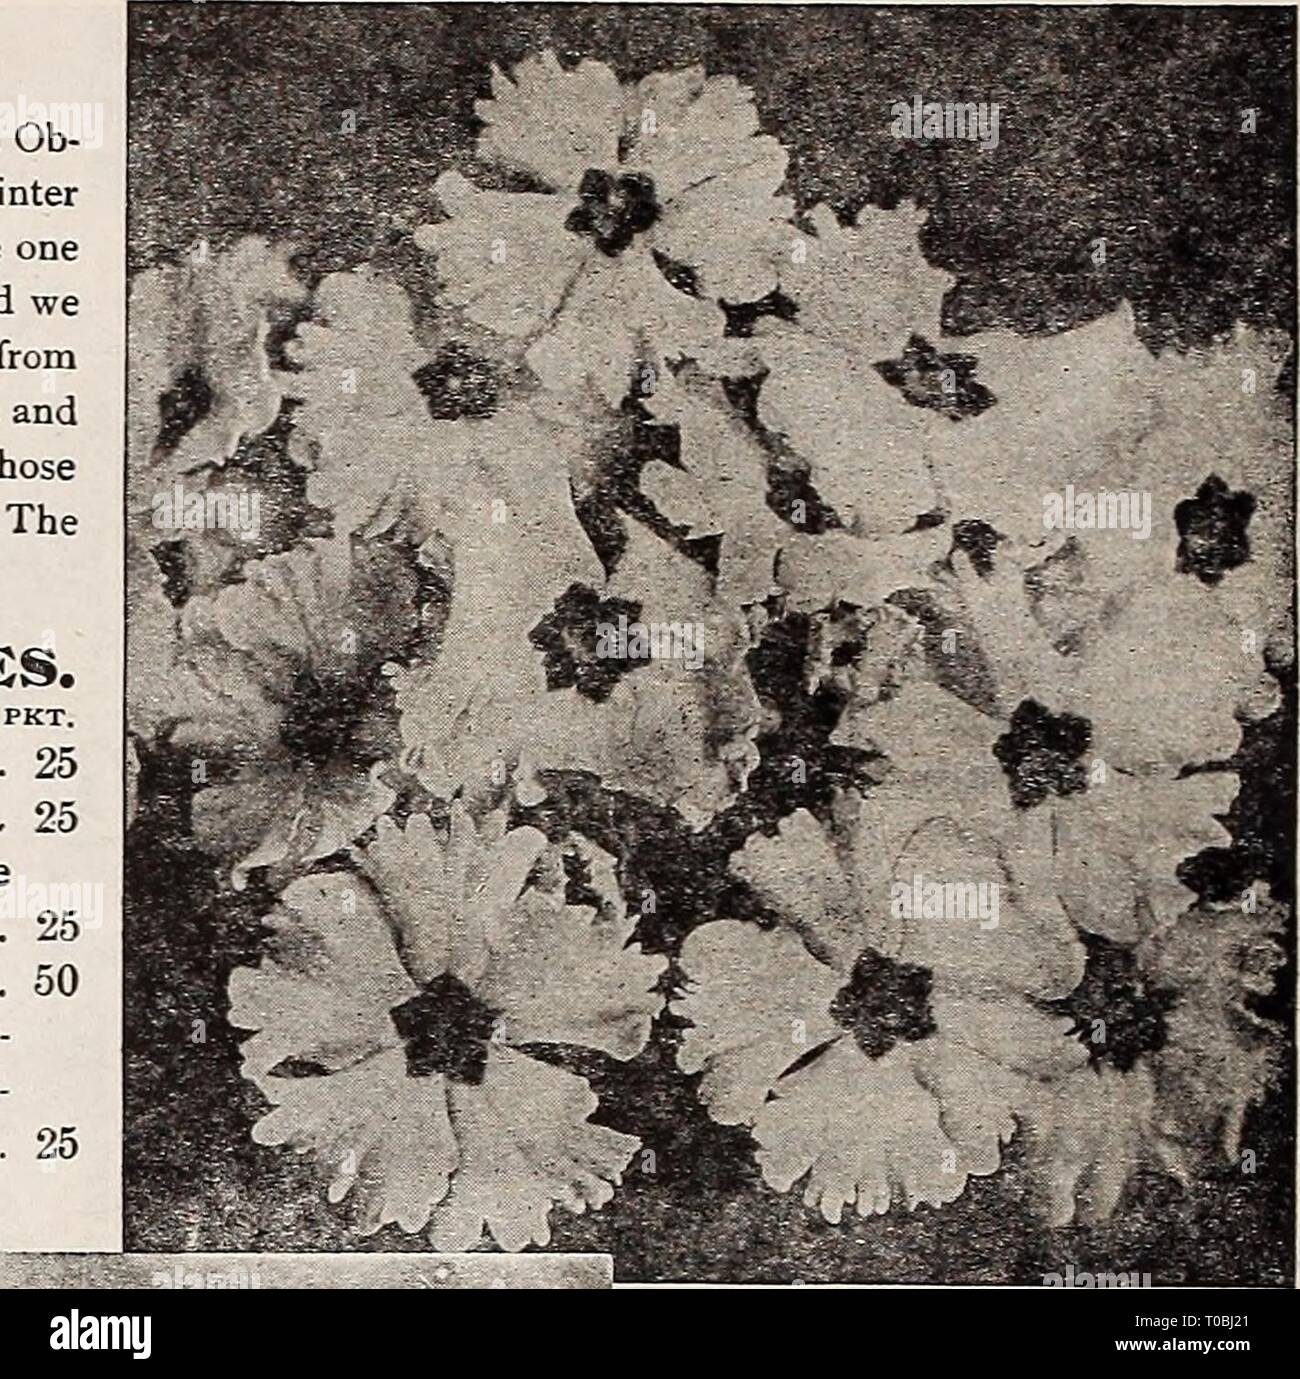 Dreer's garden book 1917 (1917) Dreer's garden book 1917 dreersgardenbook1917henr Year: 1917  Large-Flowering Chinese Primrosb Hardy Primroses. These are among the best of the early spring-blooming plants. With â a slight protection they will stand the winter, but will do better if protected by a cold frame. PER PKT. 1500 Auricula. A well-known favorite of great beauty; seed saved from splendid choice mixed varieties; 6 inches 15 3825 J a p o n i c a (Japanese Primrose). Bright and showy flowers; borne in stems 6 to 9 inches long; mixed colors 15 (English Primrose). Canary-yellow, fragrant.   - Stock Image